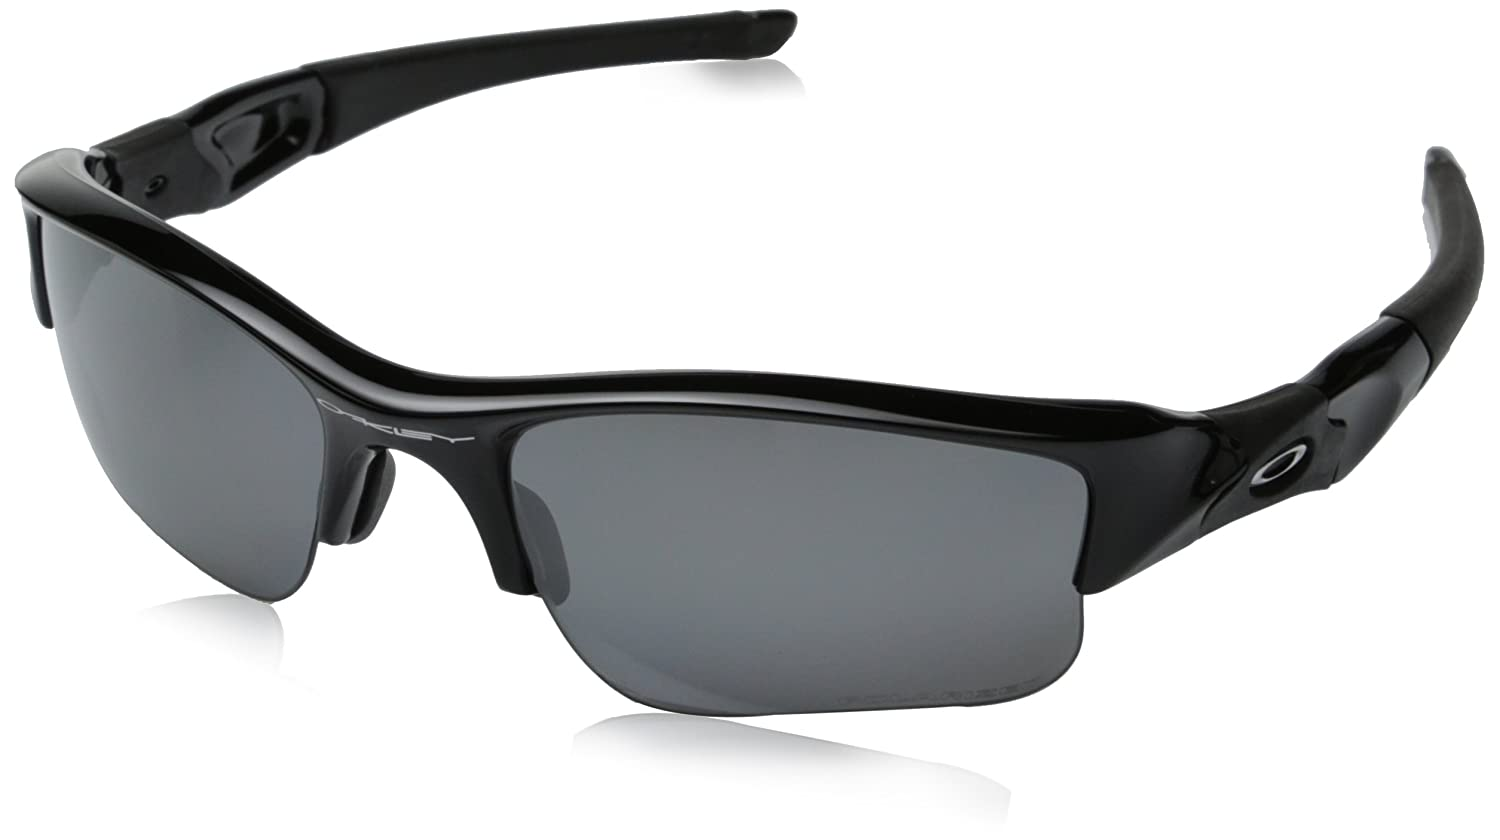 3e7ed0781a91e Amazon.com  Oakley Men s Flak Jacket XLJ 12-903 Sunglasses,Jet Black Frame  Black Iridium,one size  Oakley  Shoes